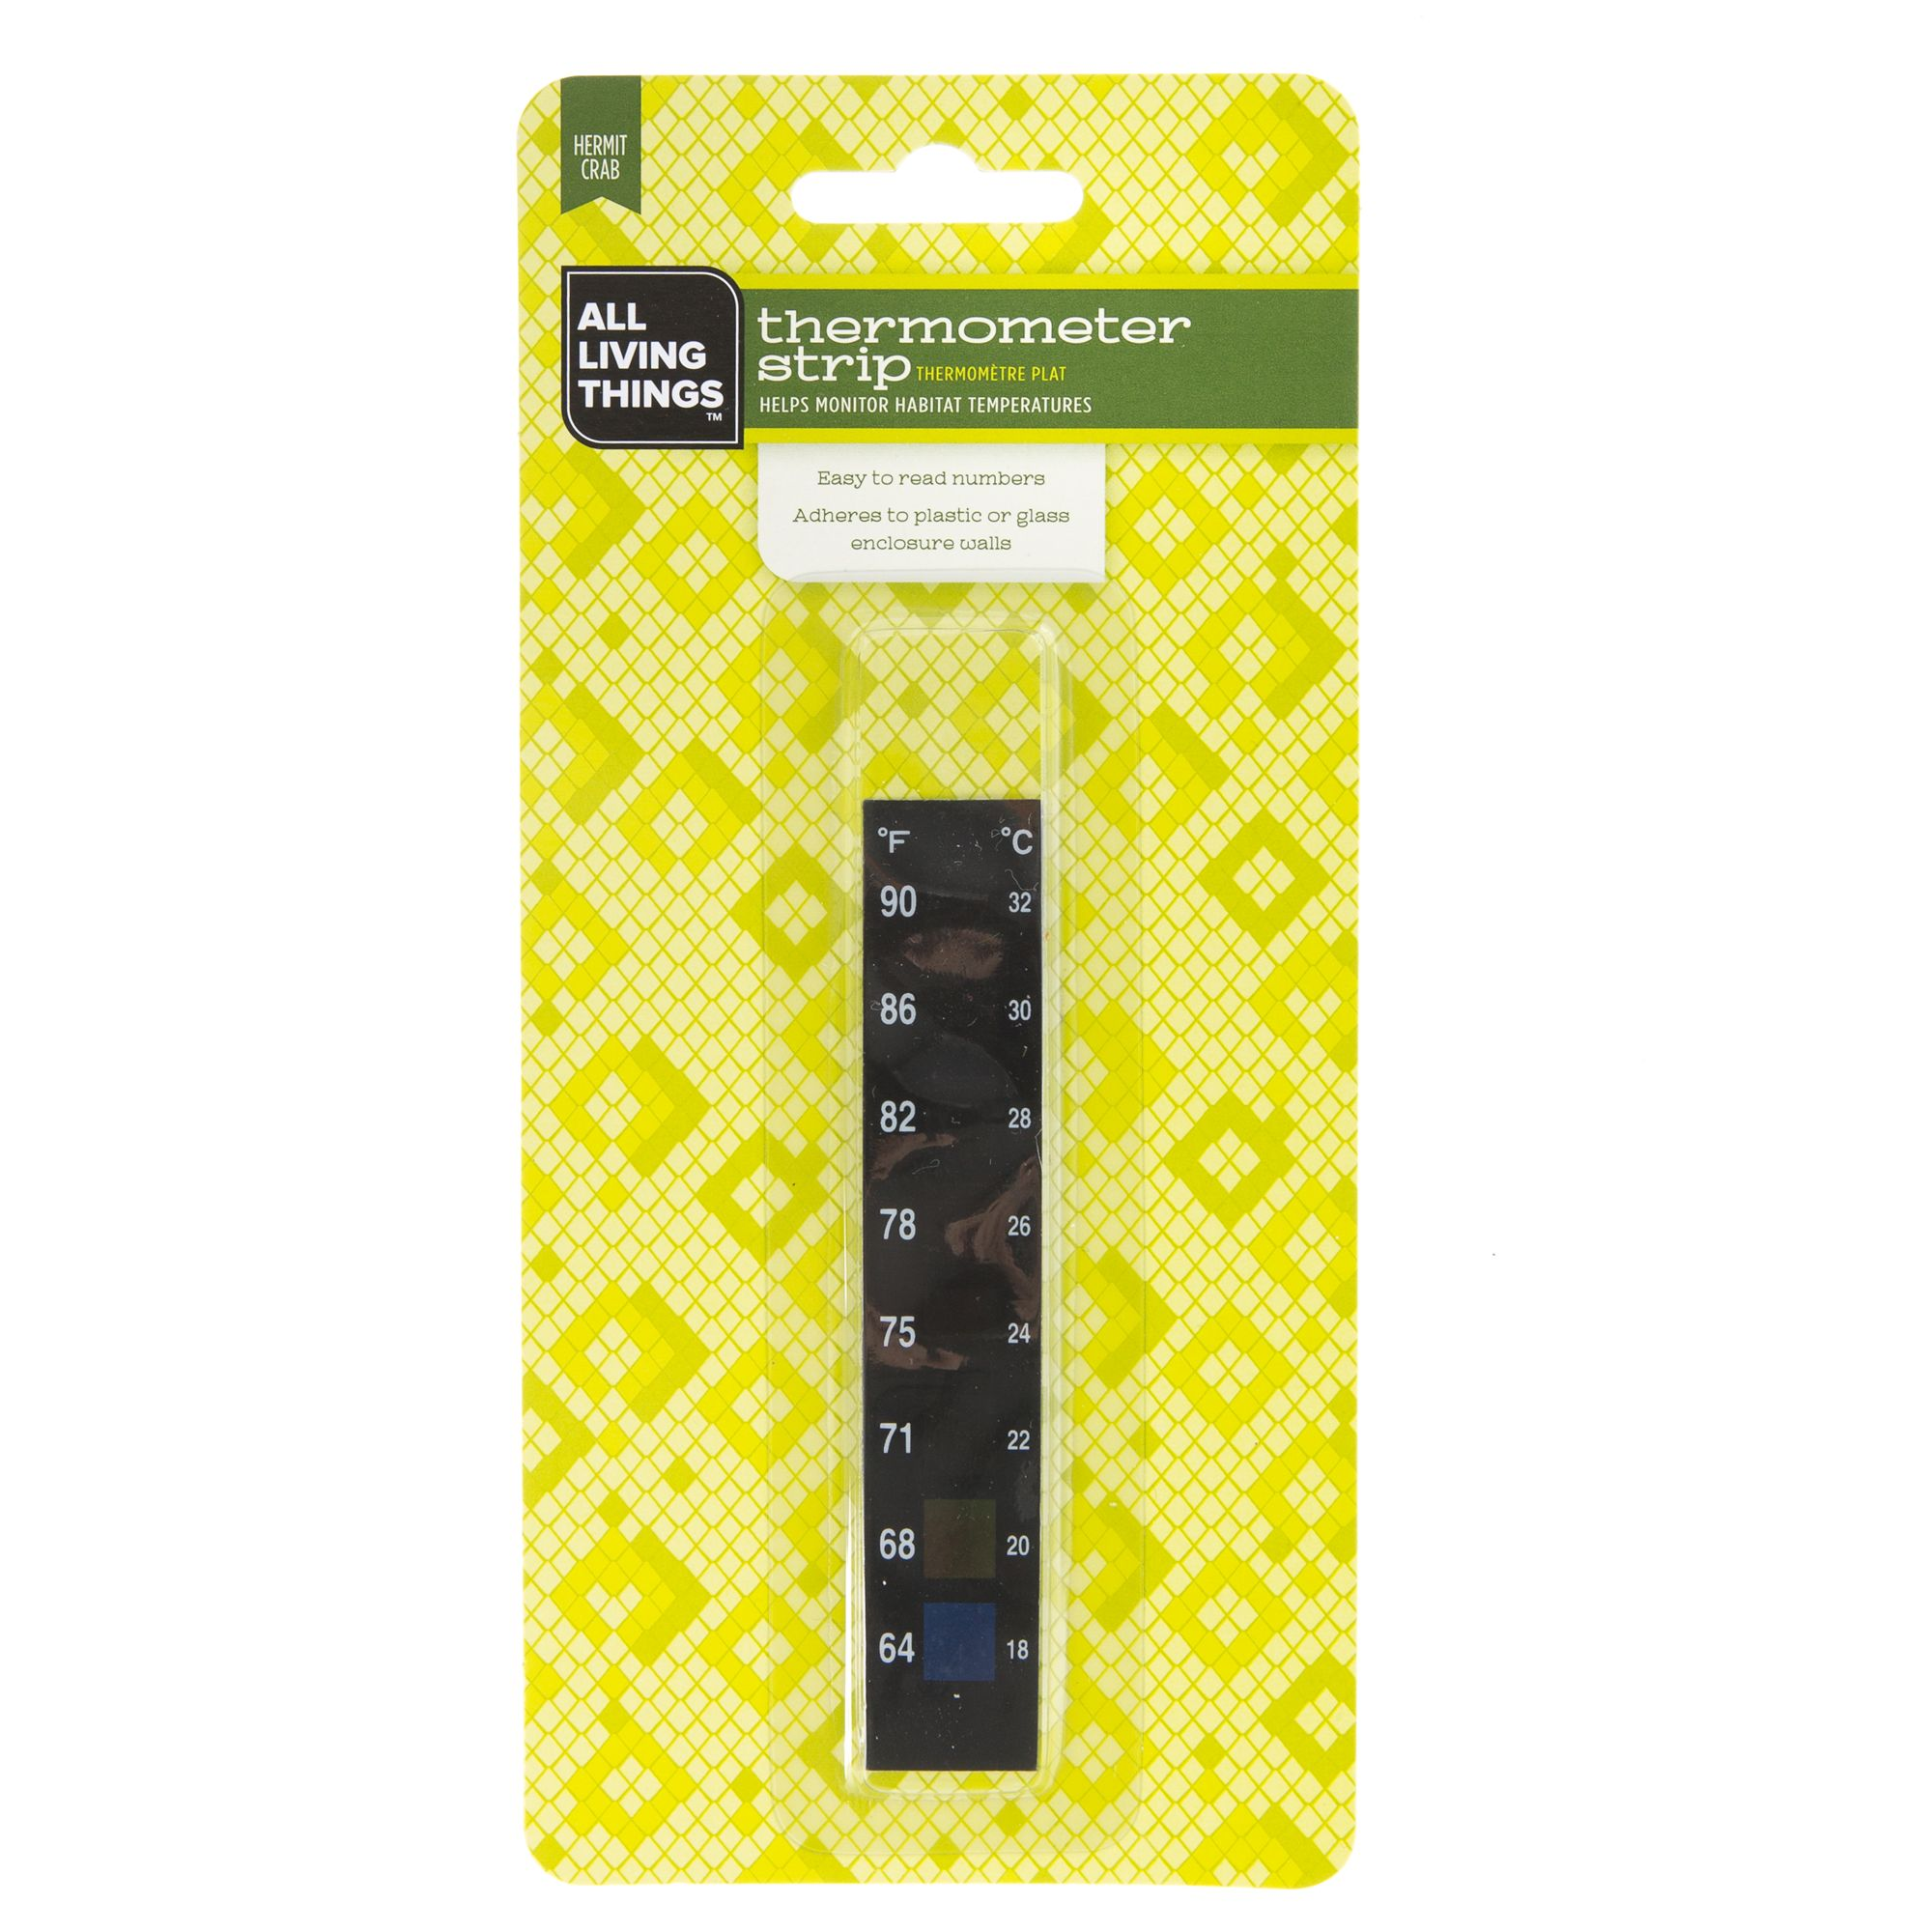 All Living Things Thermometer Strip Size One Size